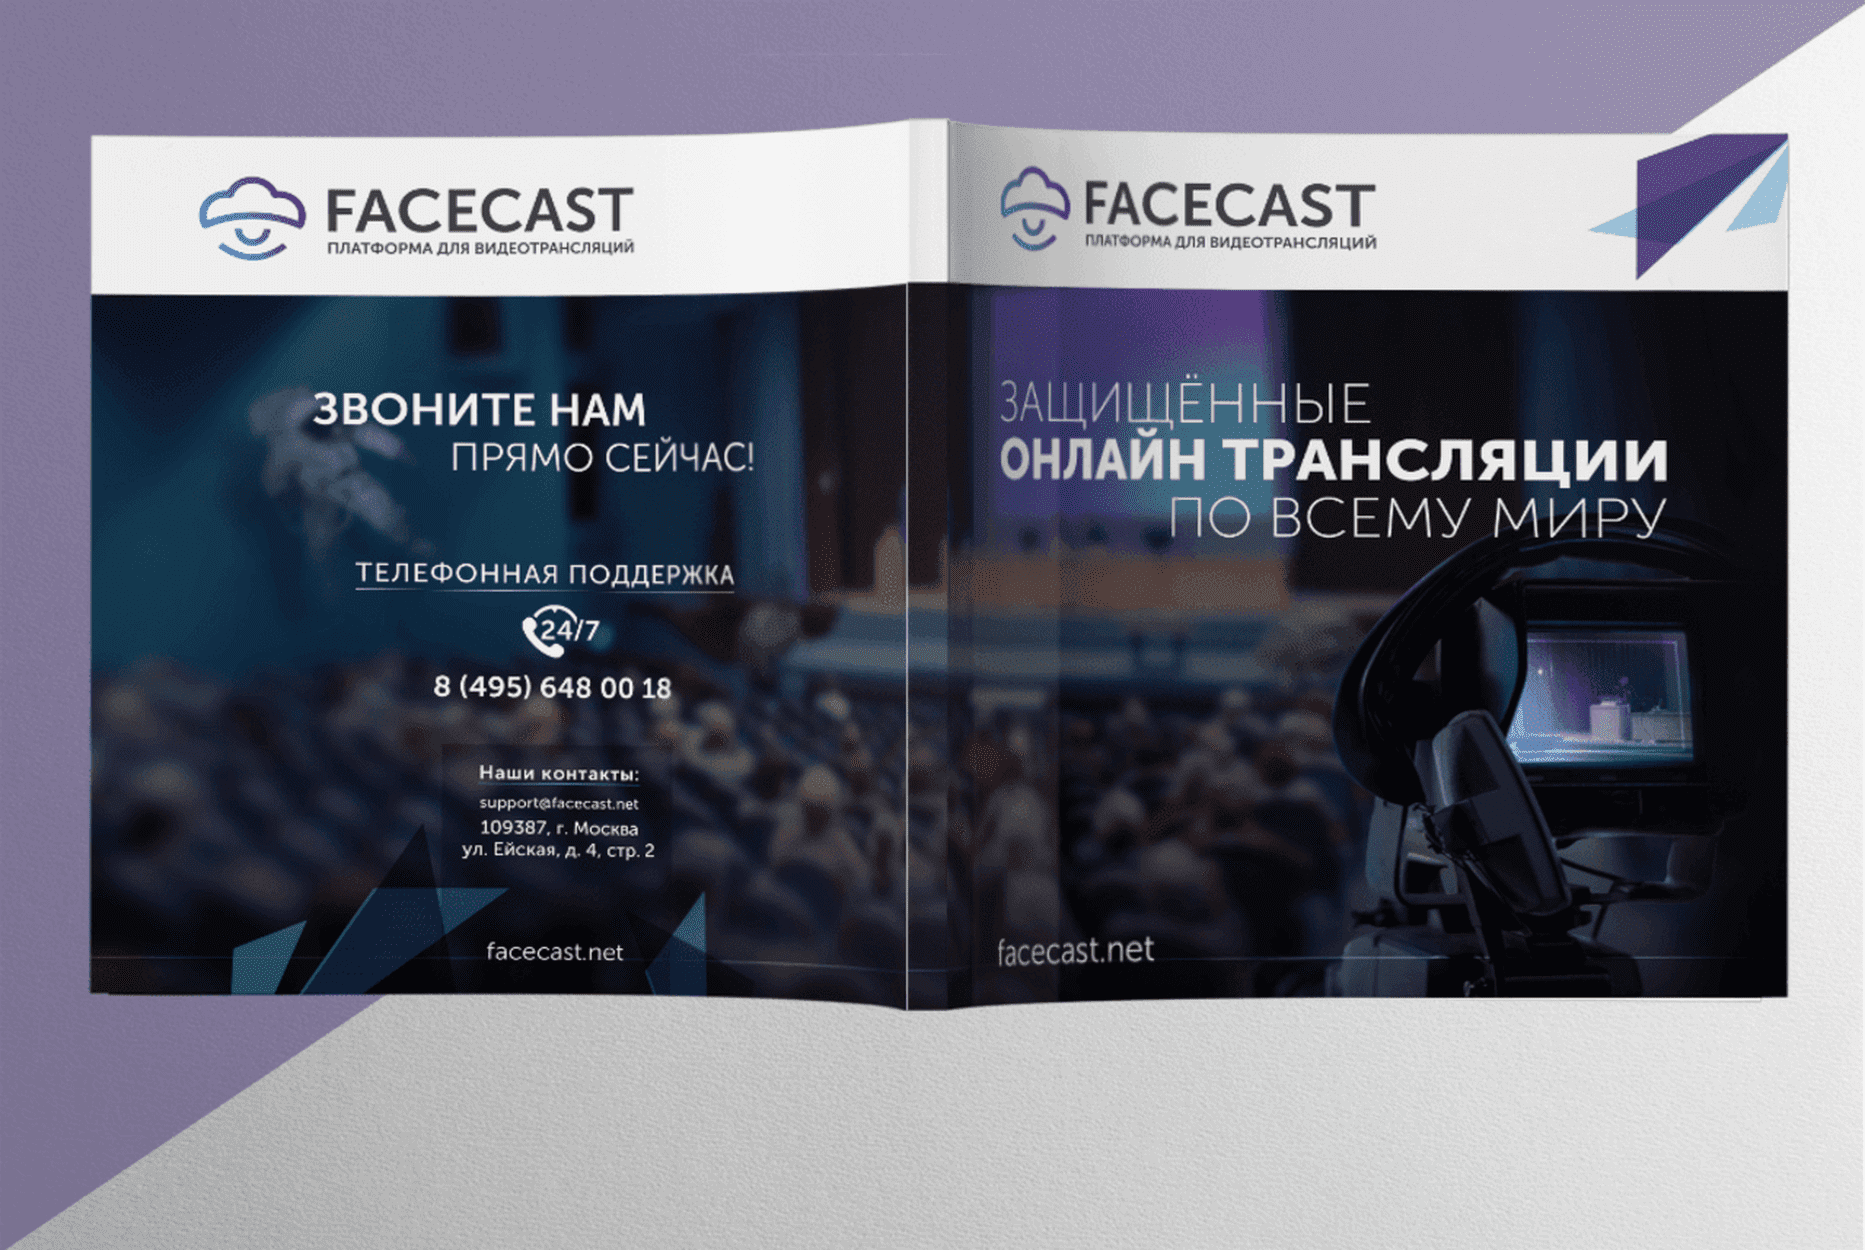 Case: Marketing Kit for Facecast Company — Rubarb - Image - 2